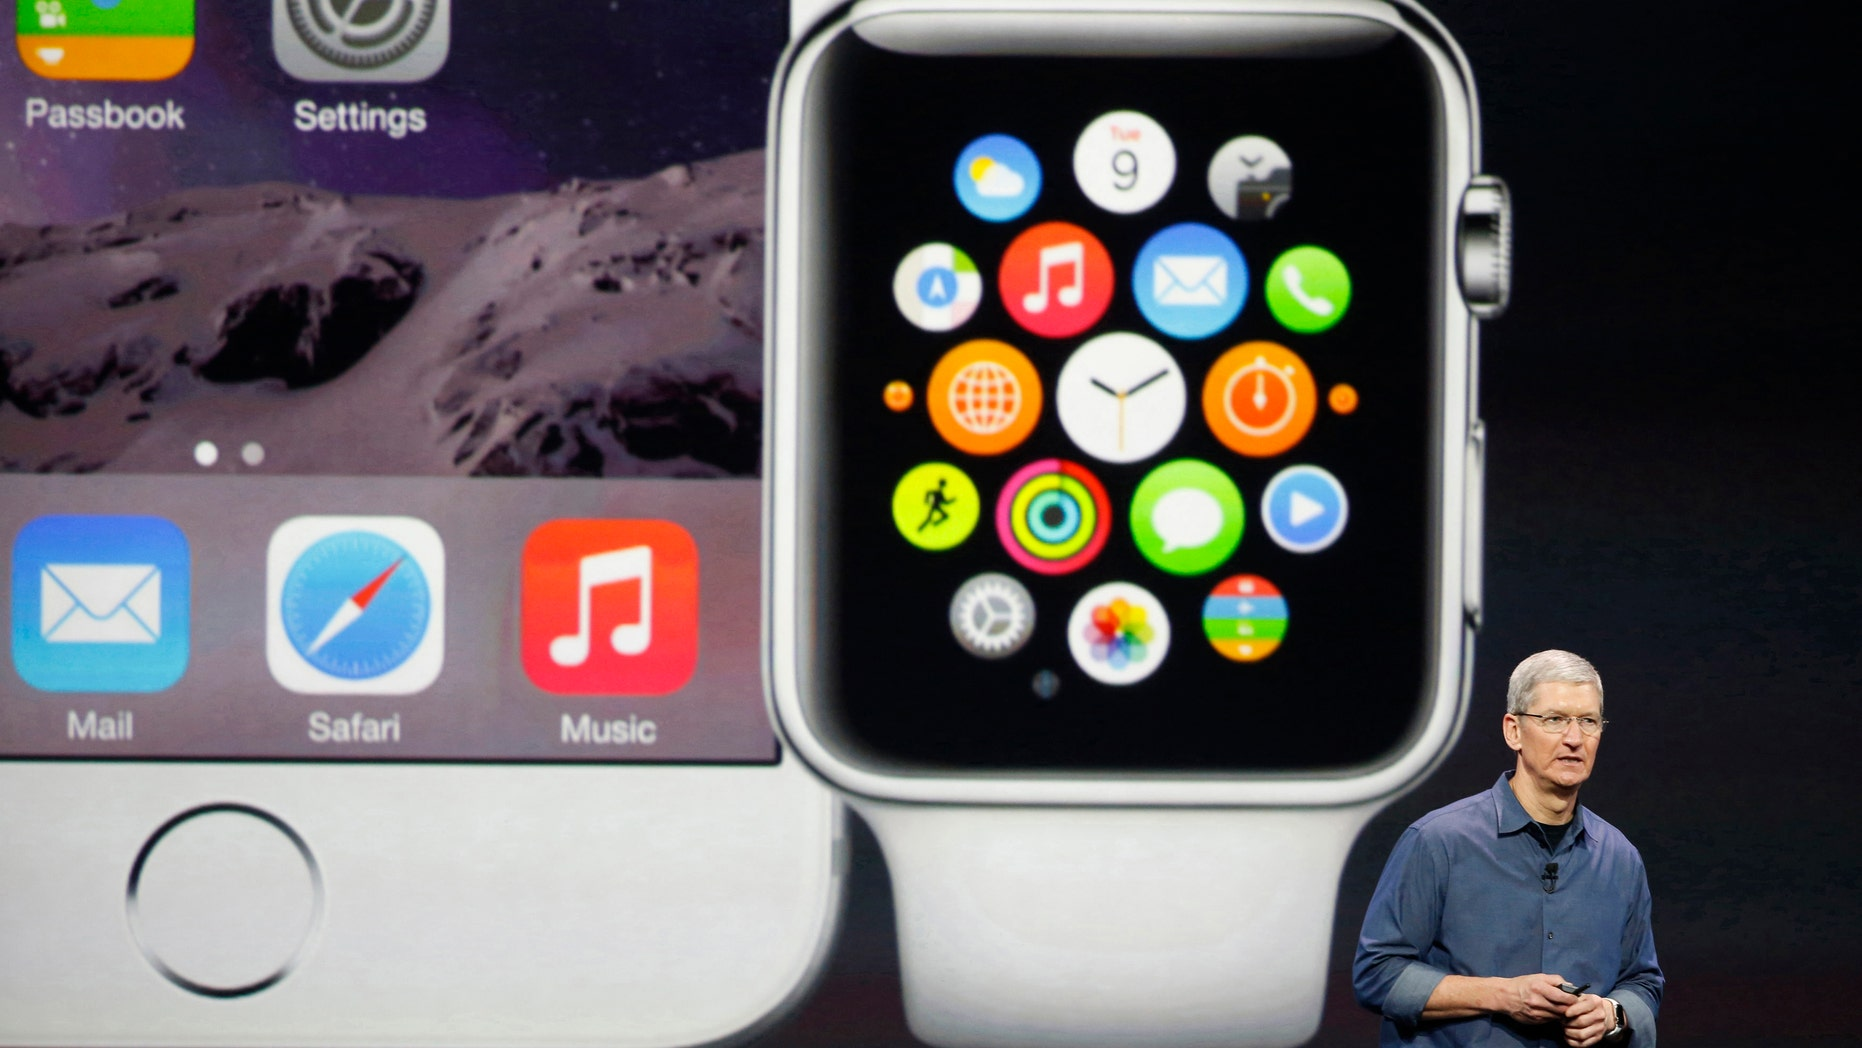 Apple CEO Tim Cook speaks during an Apple event announcing the iPhone 6 and the Apple Watch at the Flint Center in Cupertino, Calif., Sep. 9, 2014.